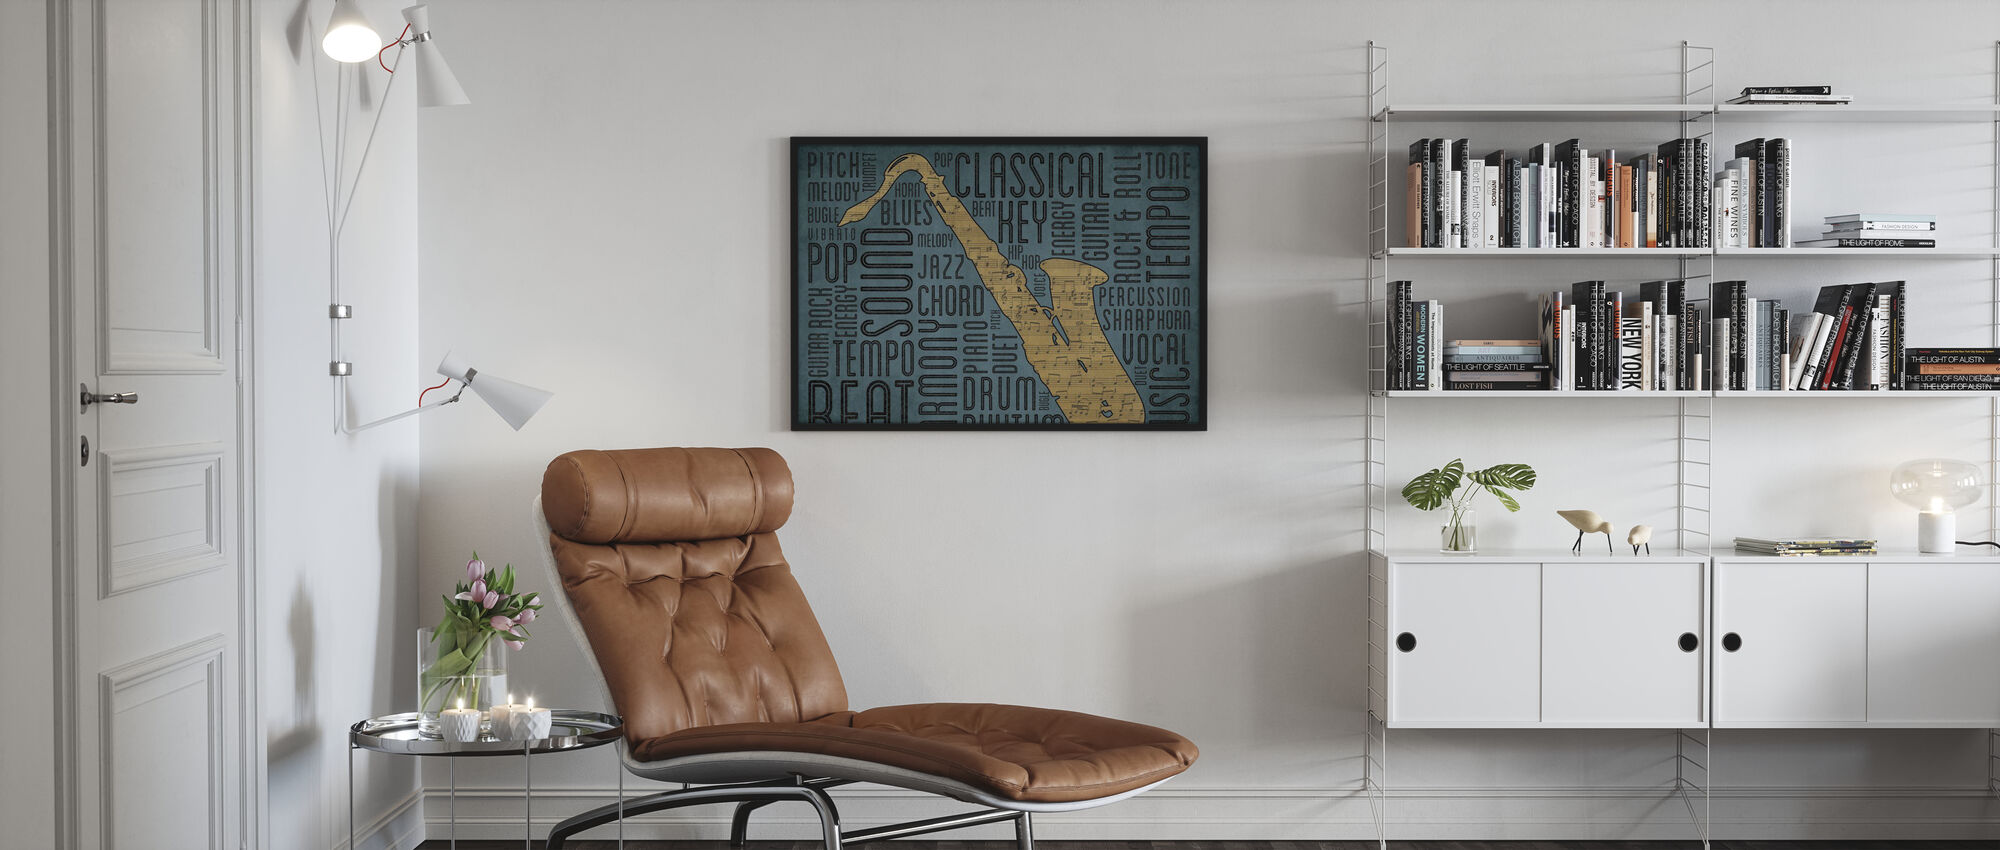 Sax - Poster - Woonkamer